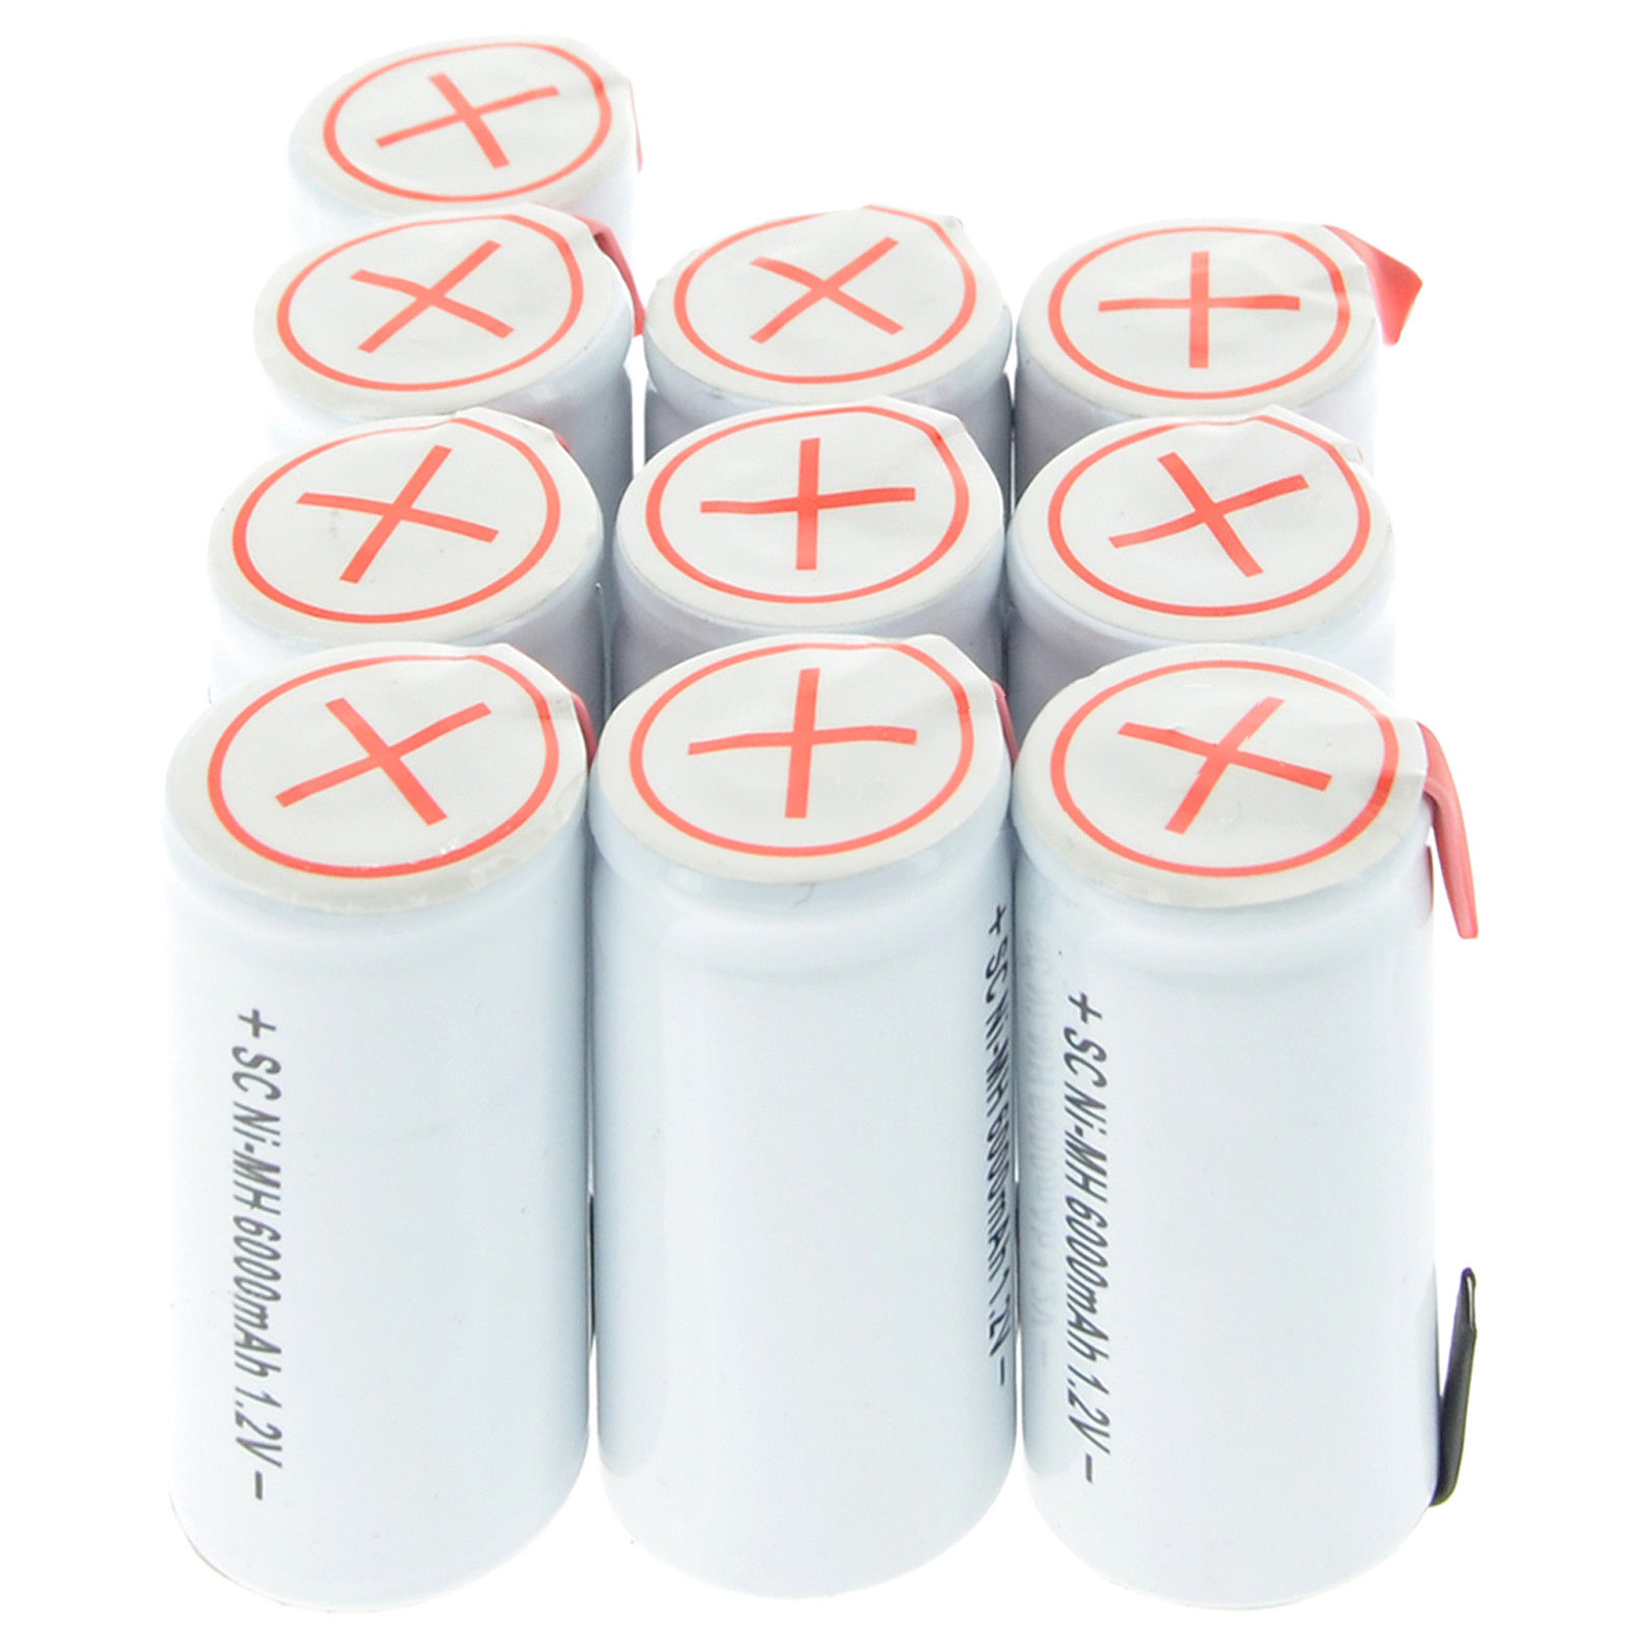 10pcs Sub C Ni-MH 6000mAh 1.2V SubC Rechargeable Battery With Tab White Color image